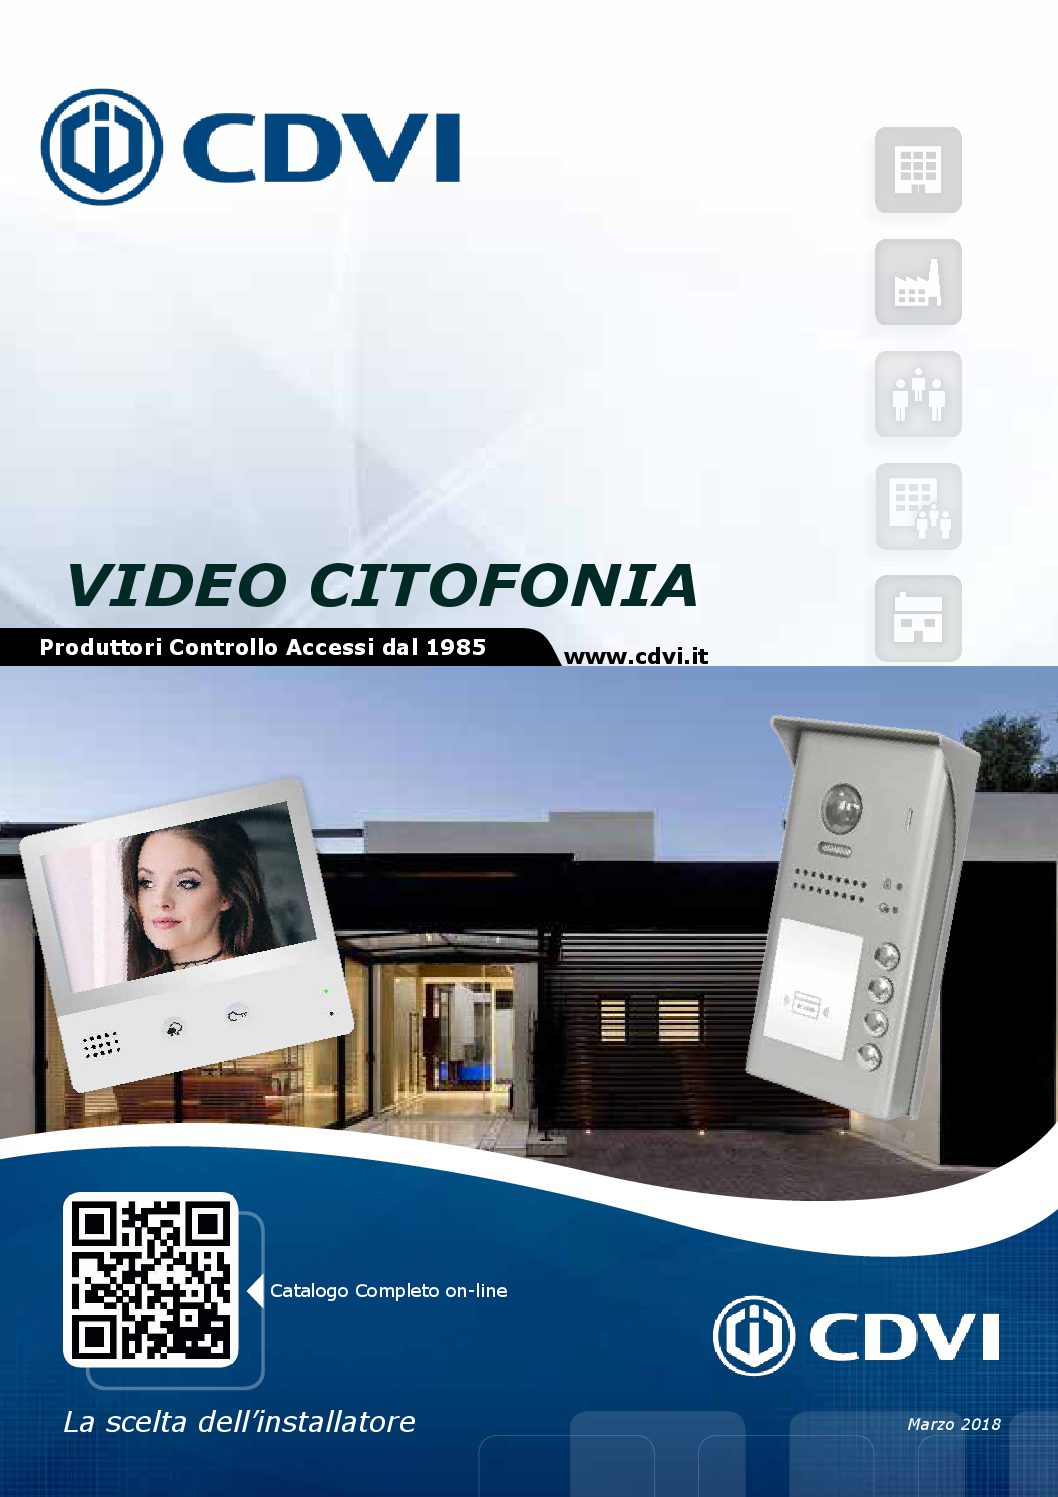 Depliant Video Citofonia Digitale Marzo 2018